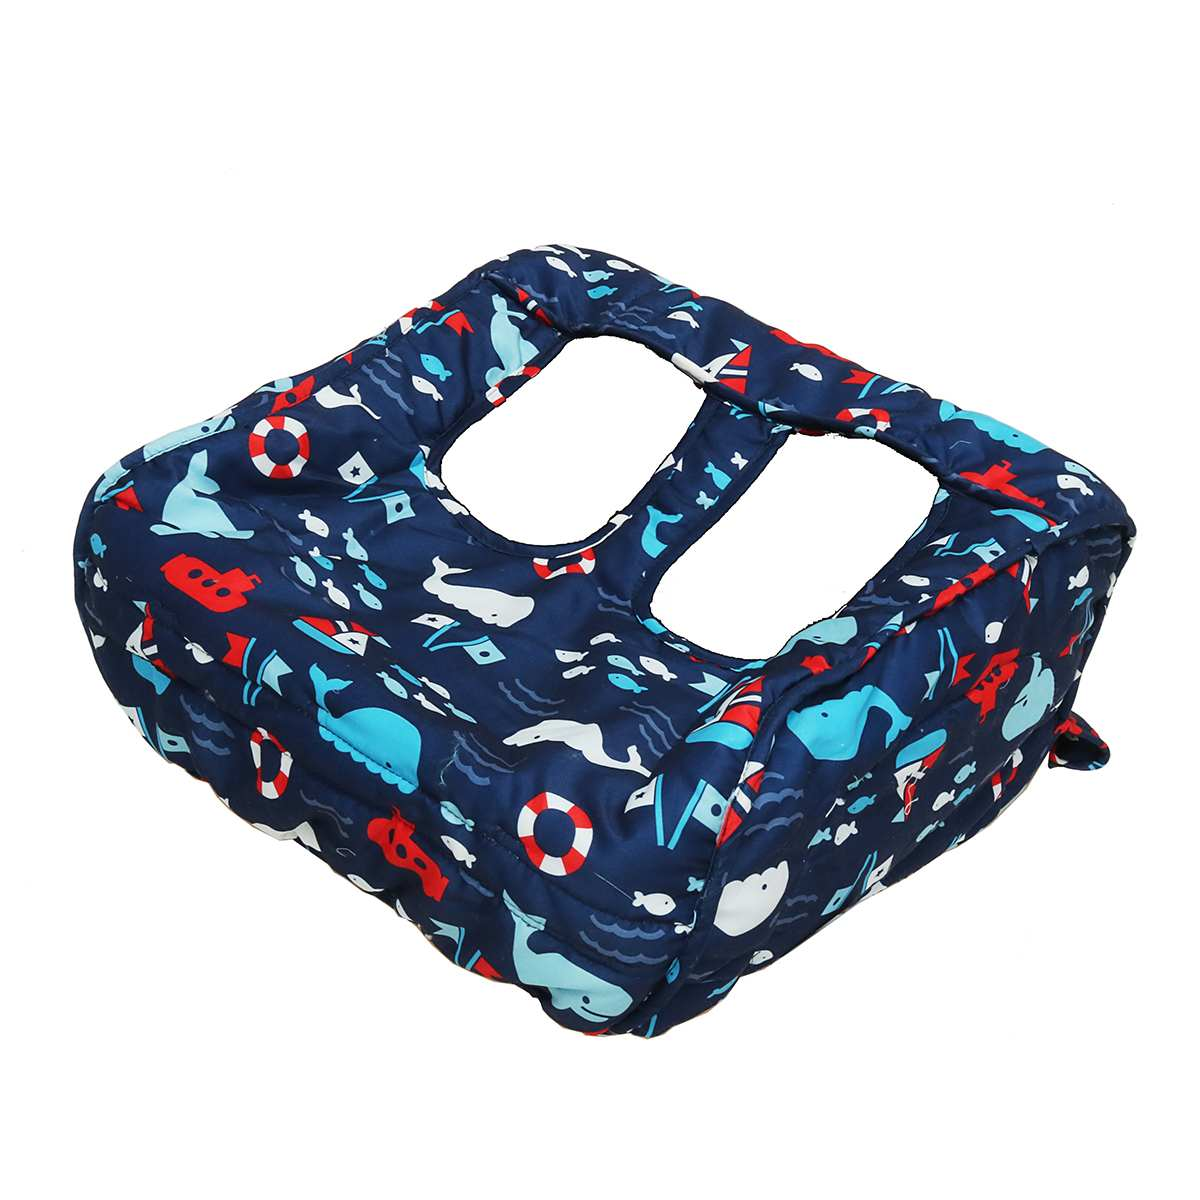 Baby Shopping Push Cart Protection Cushion Baby Chair Seat Mat Foldable Baby Kids Trolley Pad Ocean World Shopping Cart Cover Islamabad